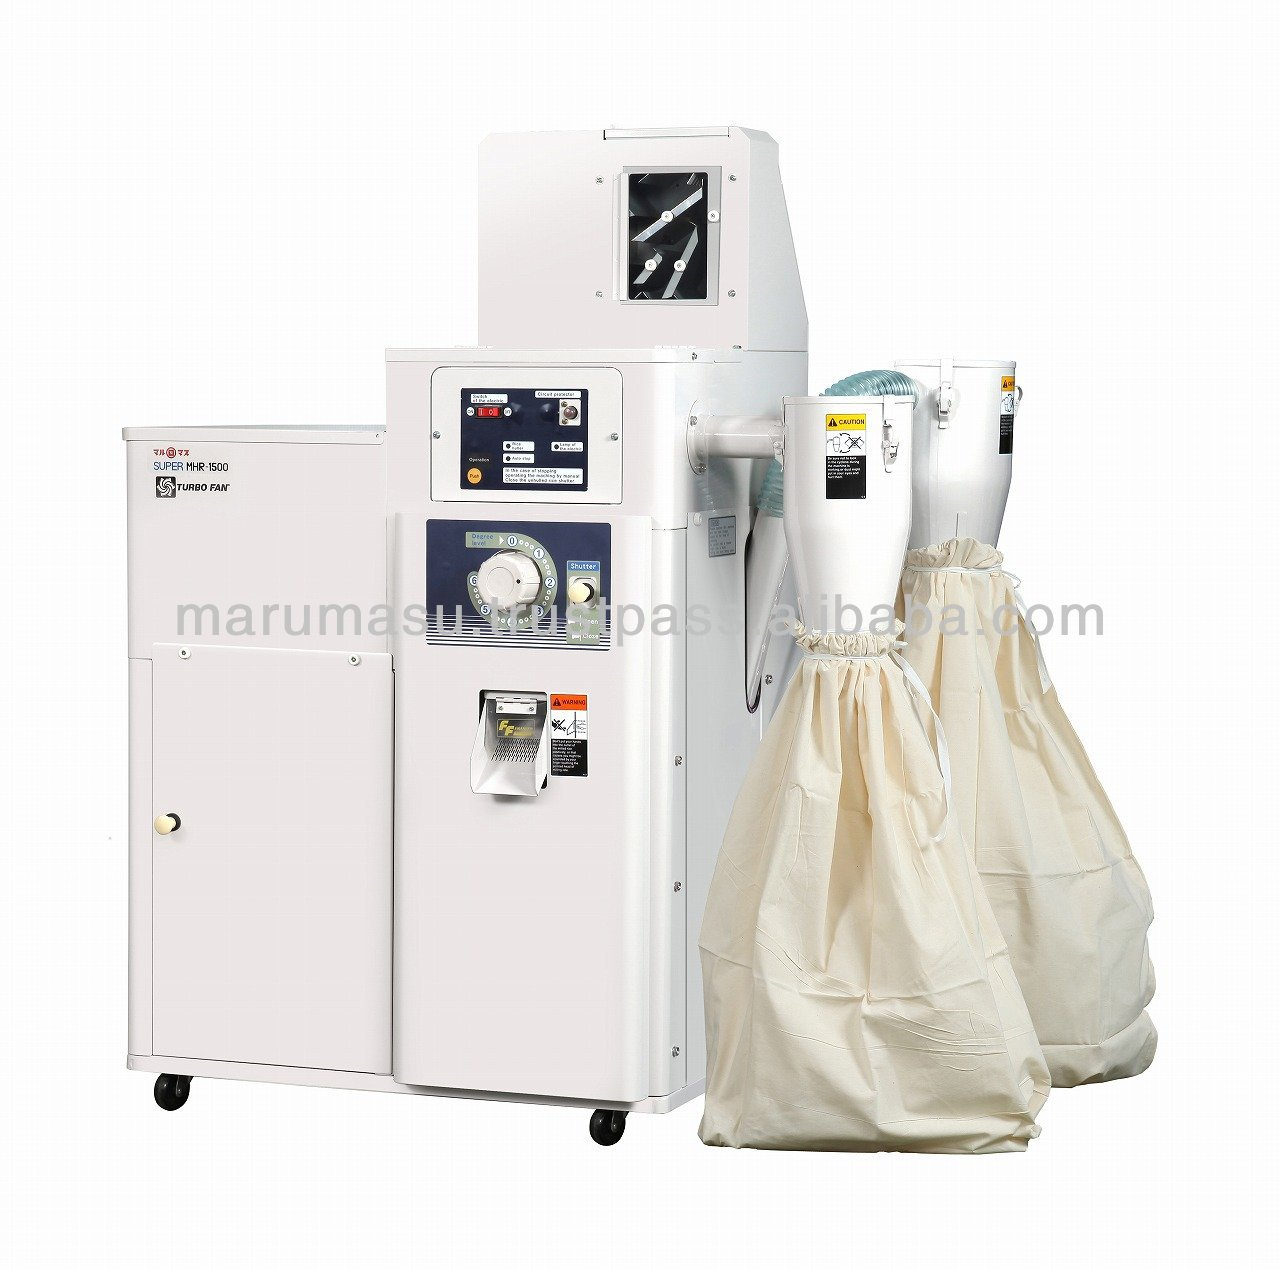 Japanese rice hulling machine (MHR-1500) kitchen appliance packages home depot